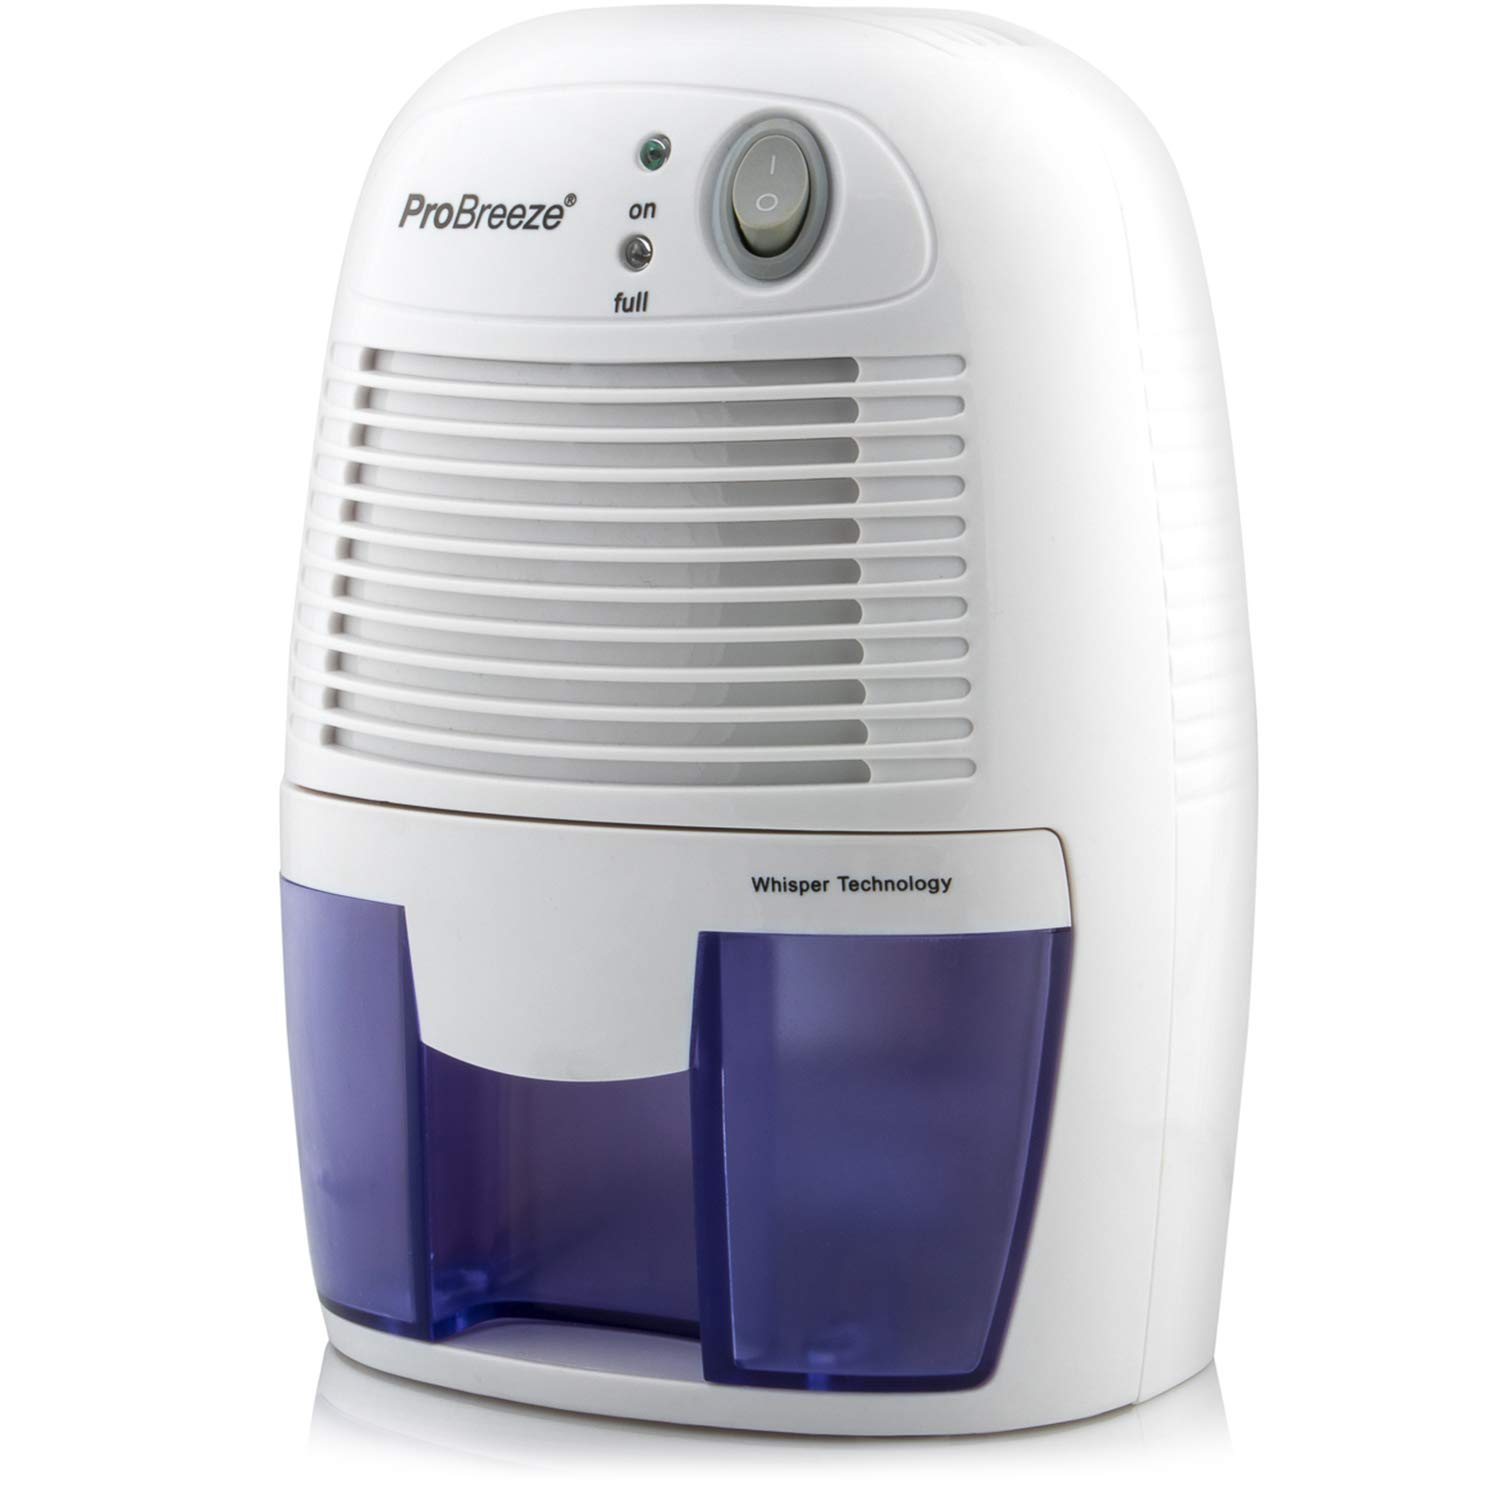 Pro Breeze Electric Mini Dehumidifier, 1200 Cubic Feet (150 sq ft), Compact and Portable for High Humidity in Home, Kitchen, Bedroom, Bathroom, Basement, Caravan, Office, RV, Garage by Pro Breeze